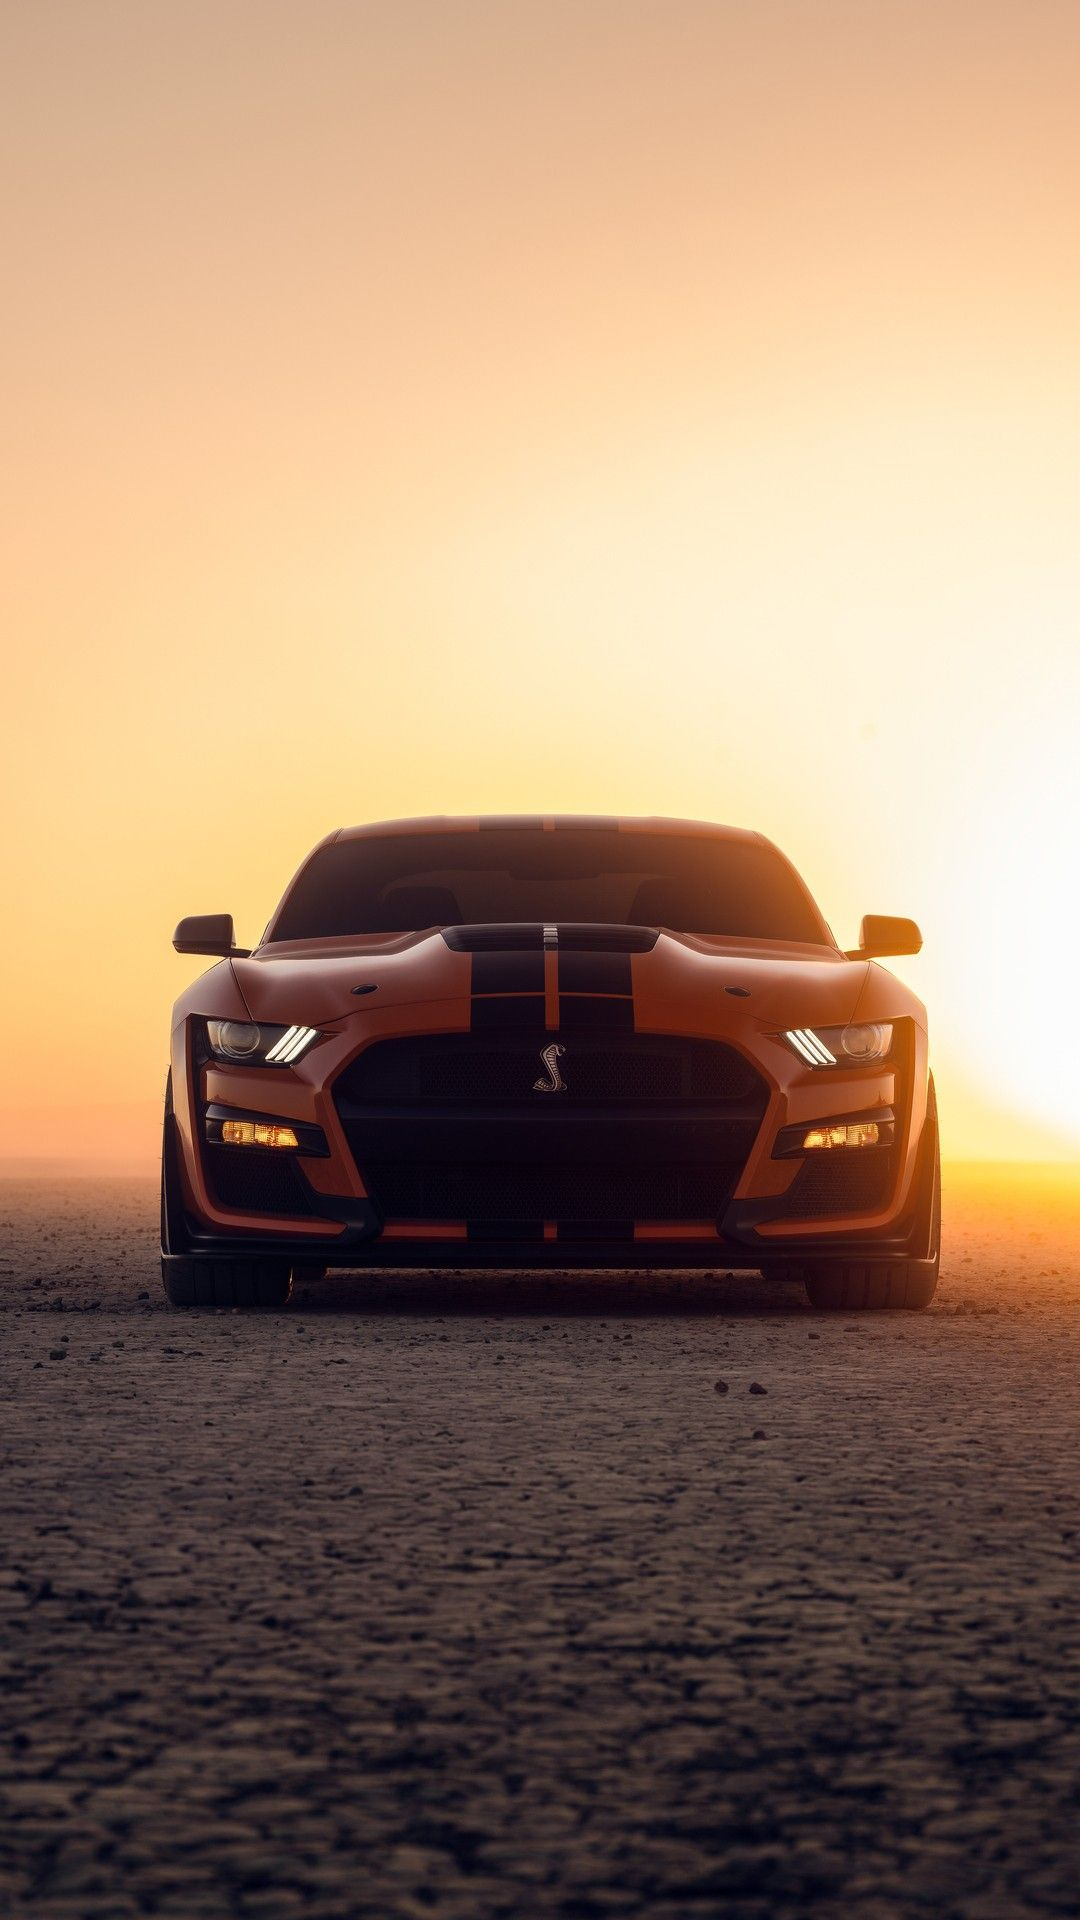 Cars Mobile Full Hd Wallpapers 1080x1920 In 2021 Mustang Shelby Orange Mustang Mustang Wallpaper